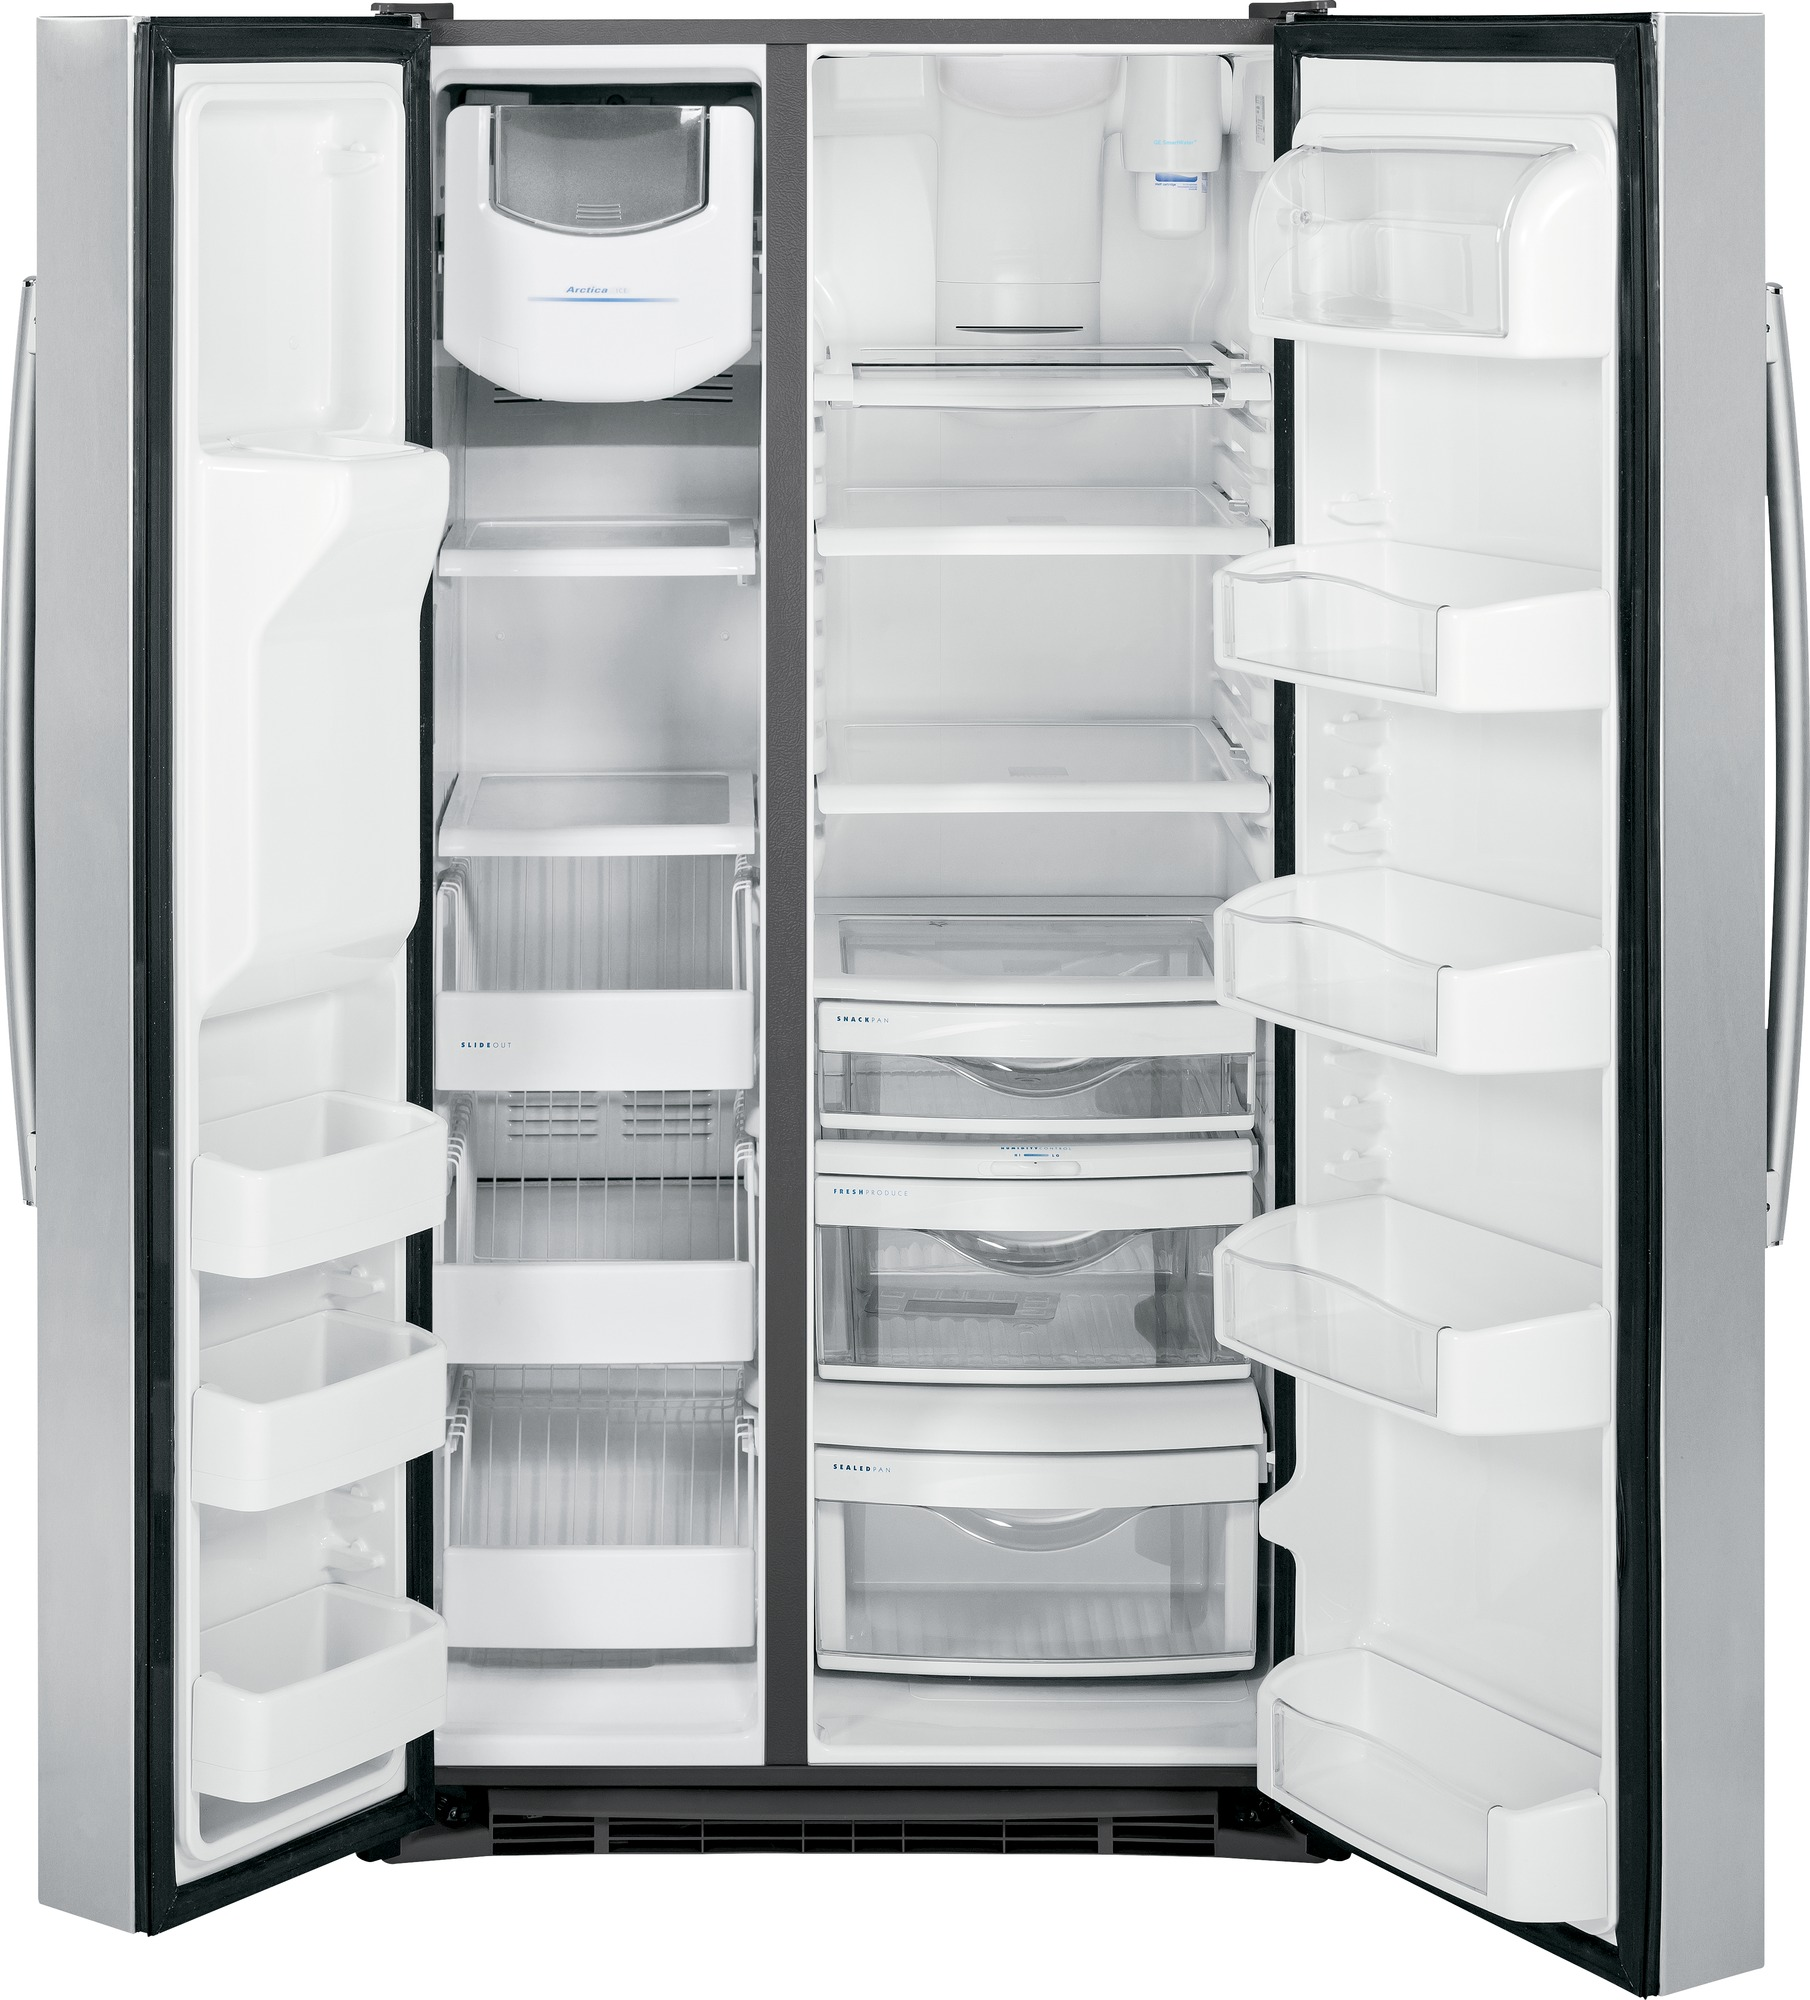 GE Profile PSS28KSHSS 28 cu. ft. Side-by-Side Refrigerator - Stainless Steel